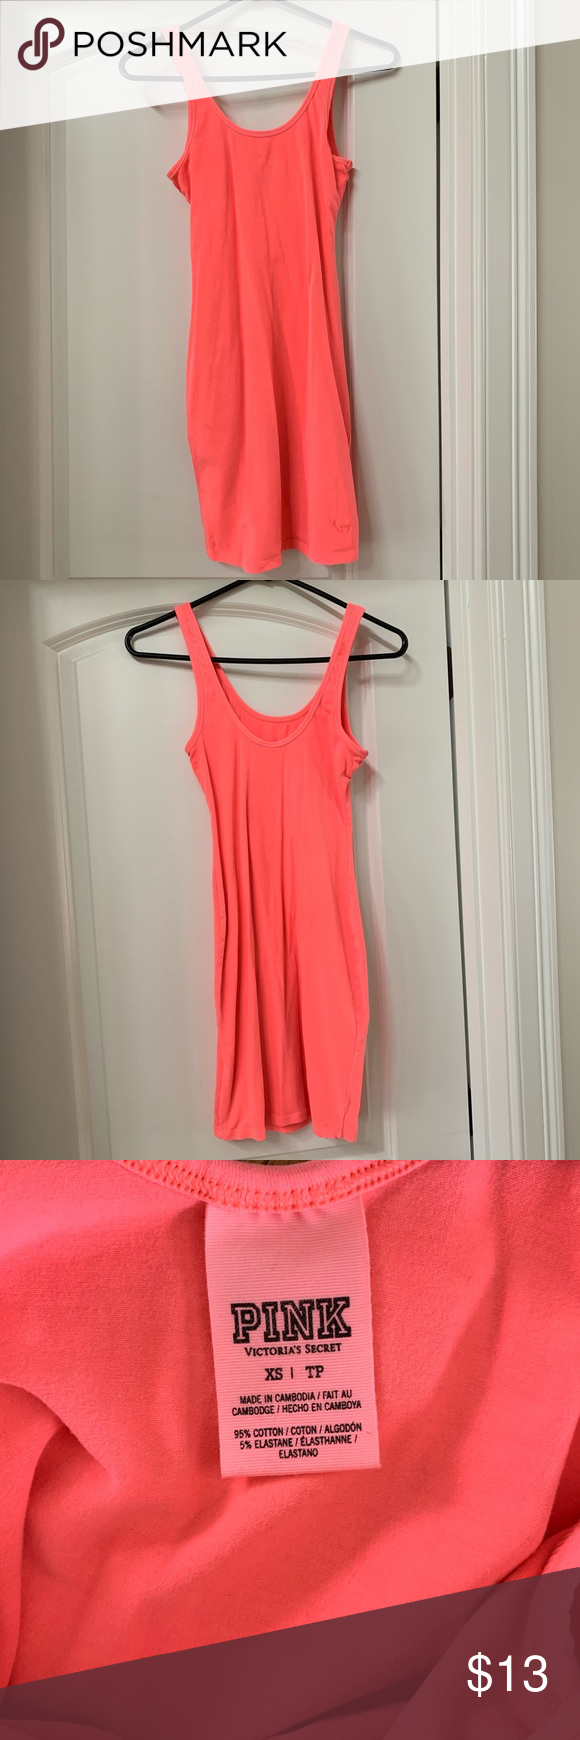 Vs Pink Neon Coral Dress Great Condition Vs Pink Dress True To Size But Stretches Too The Color Is Coral Dress Pink Victoria Secret Dress Neon Coral [ 1740 x 580 Pixel ]